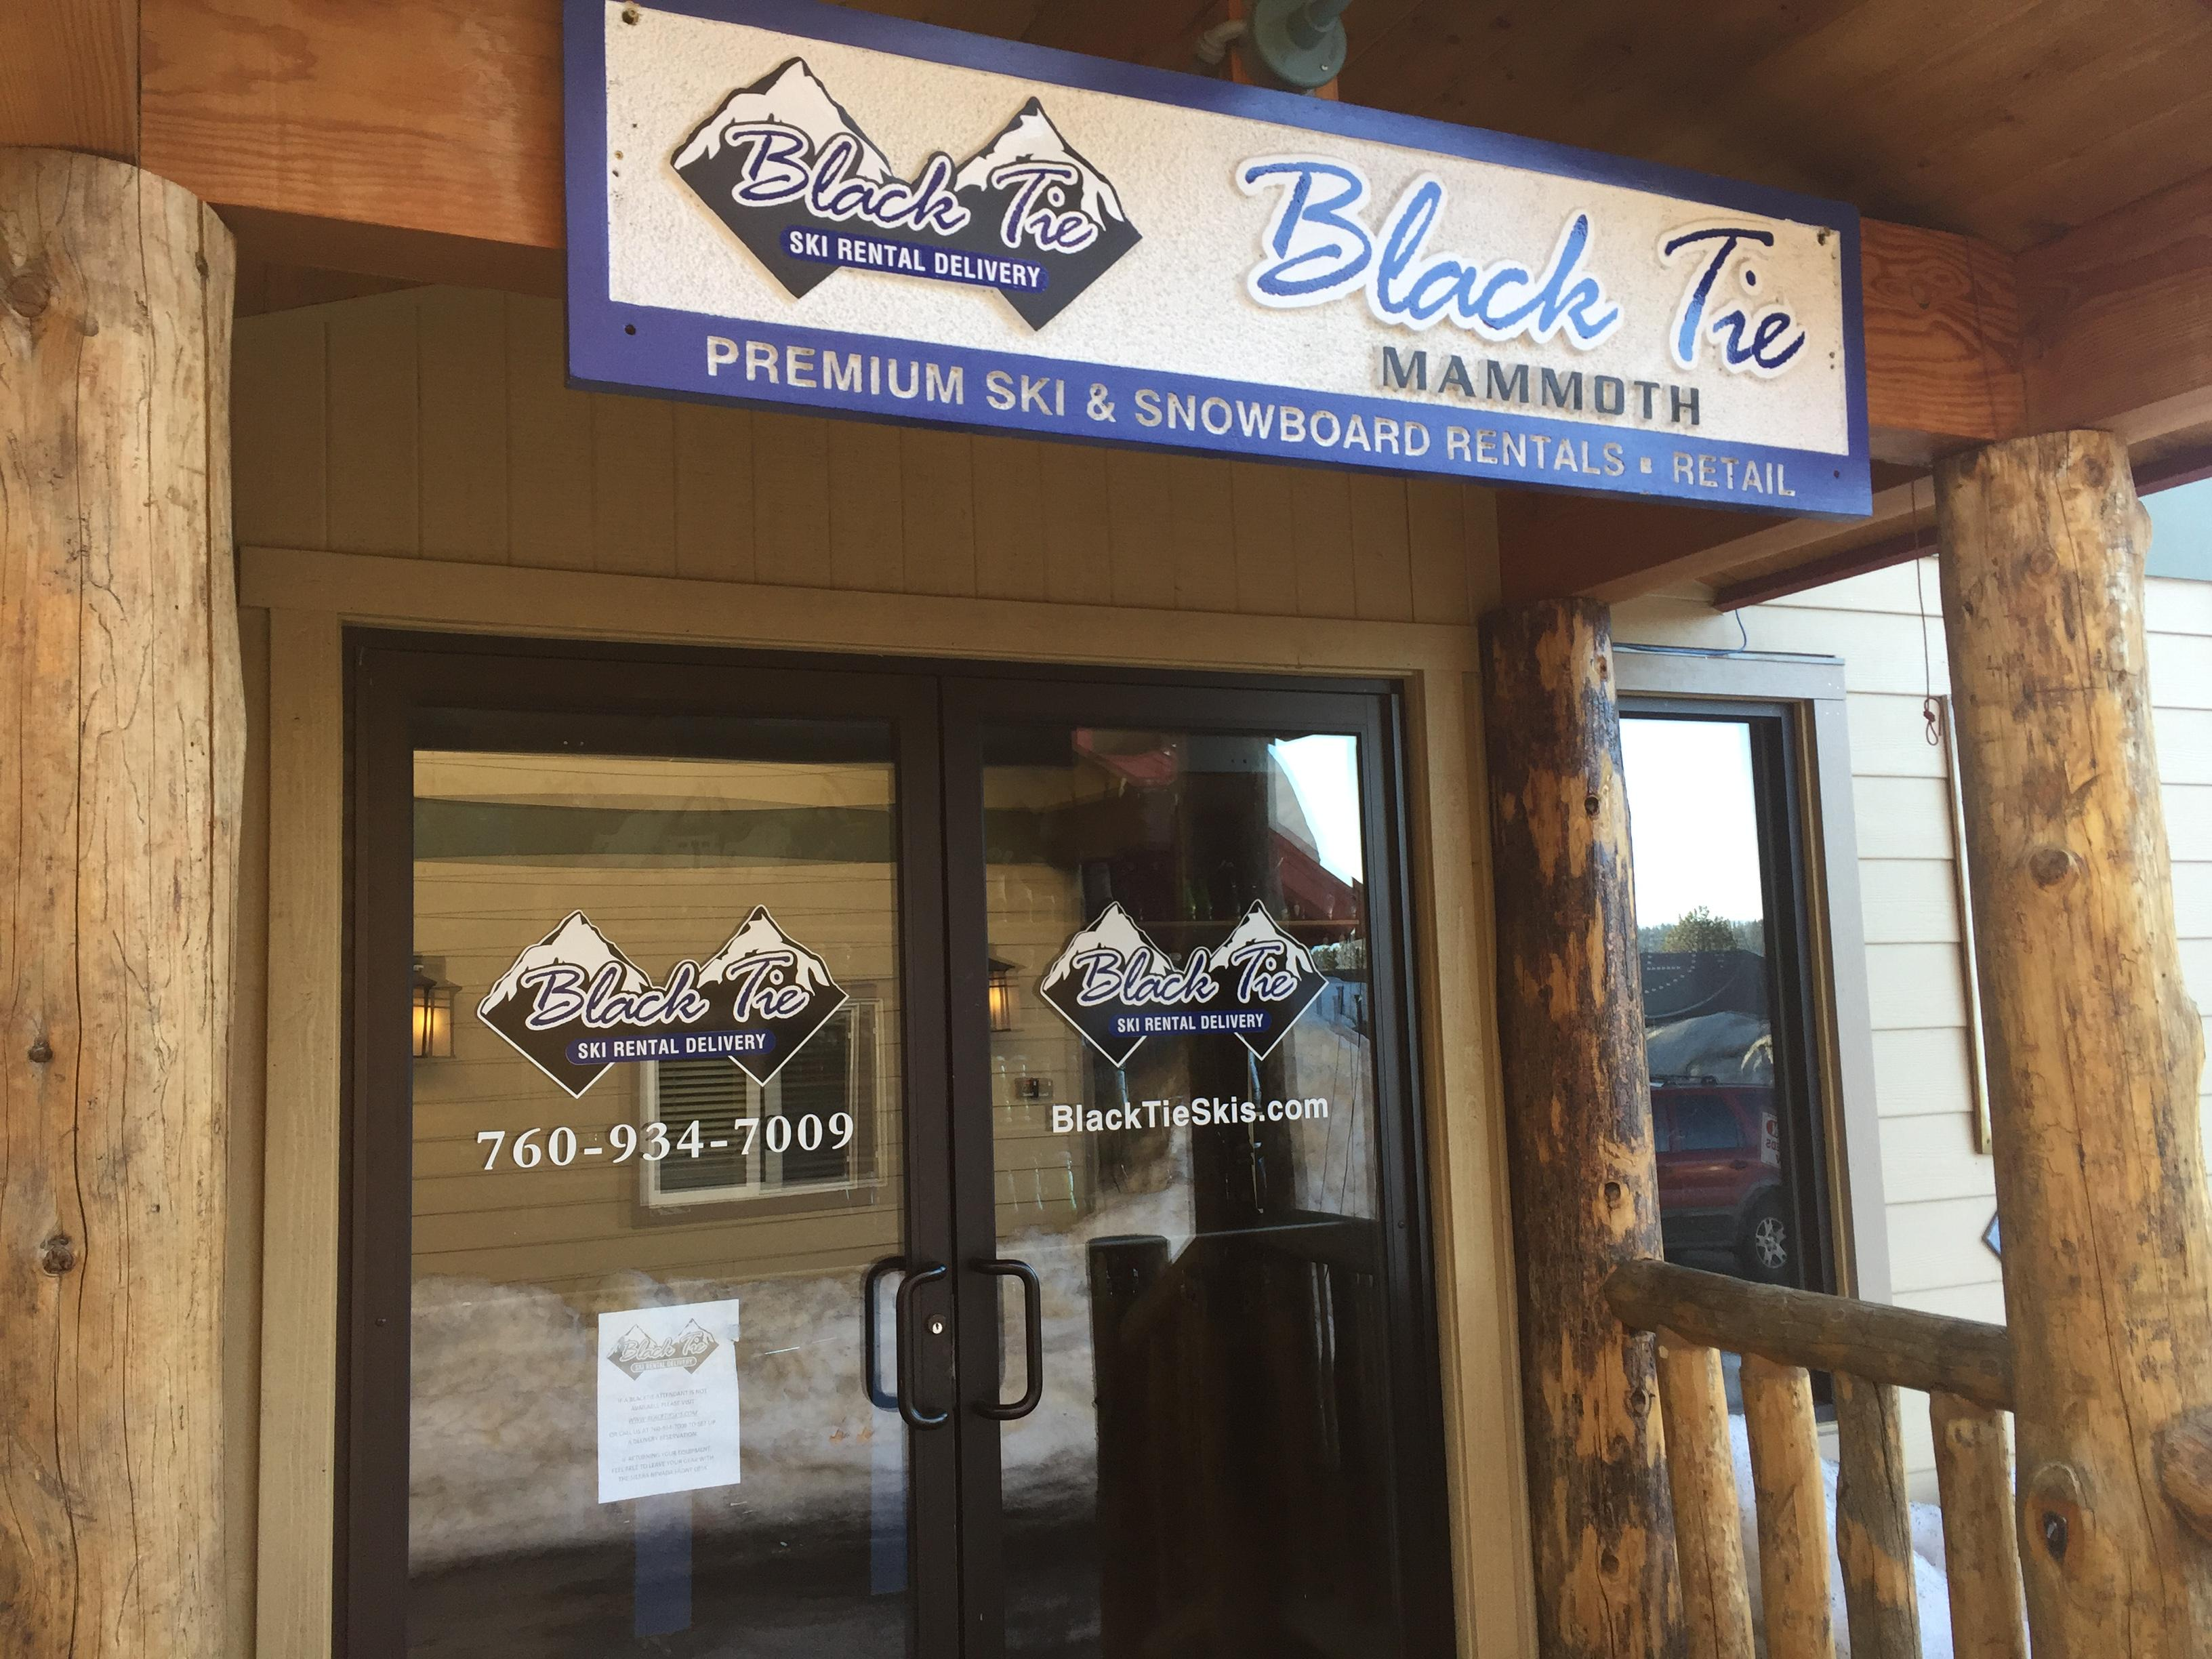 Black Tie ski rental delivery will bring all your equipment needs to you, wherever you're staying in town.